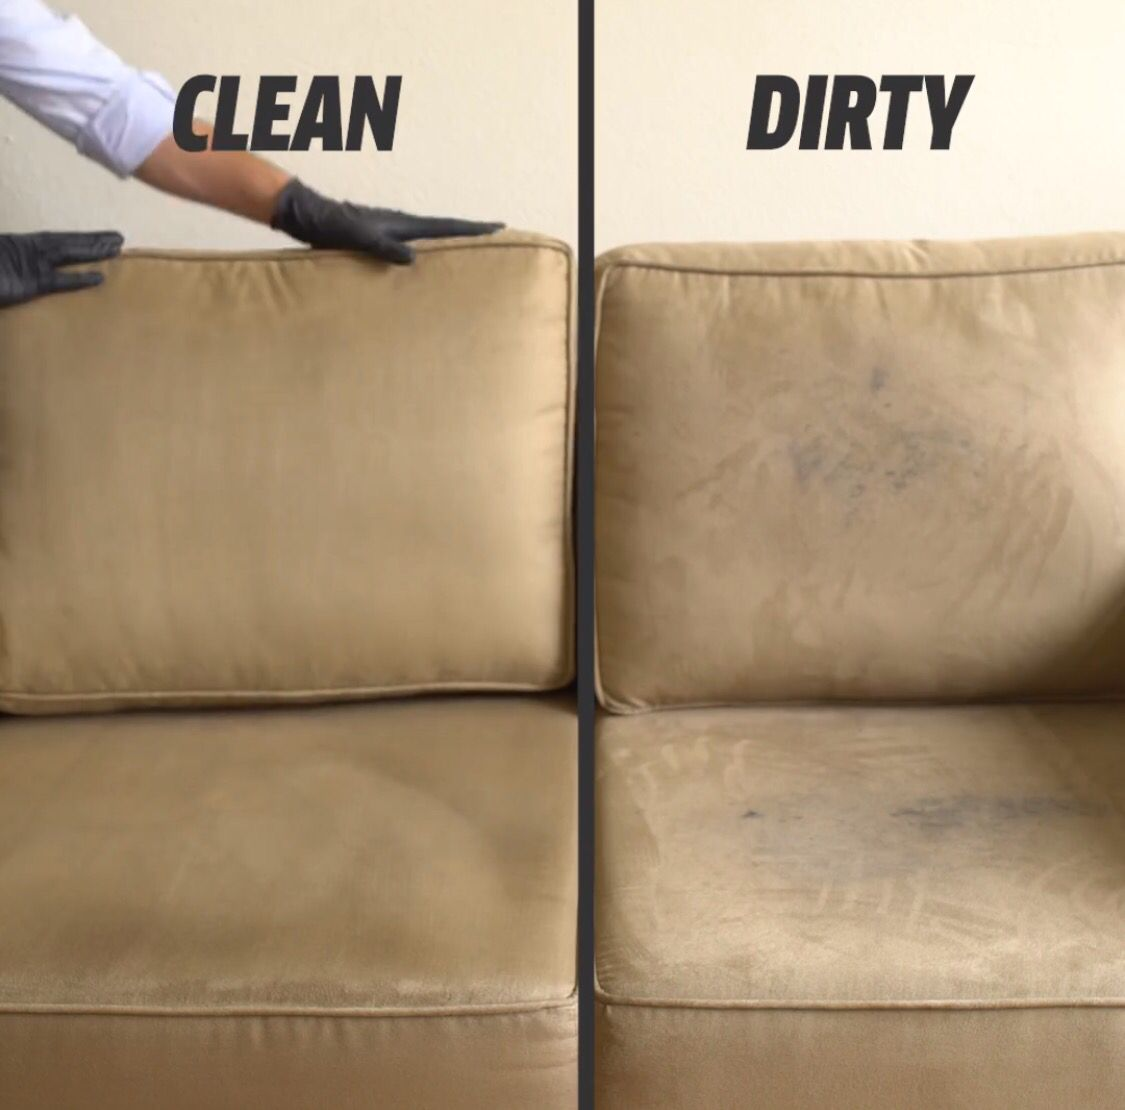 how to clean foam sofa cushions greyhound park diy couch cleaner 17oz water 5oz alcohol 3 4oz white